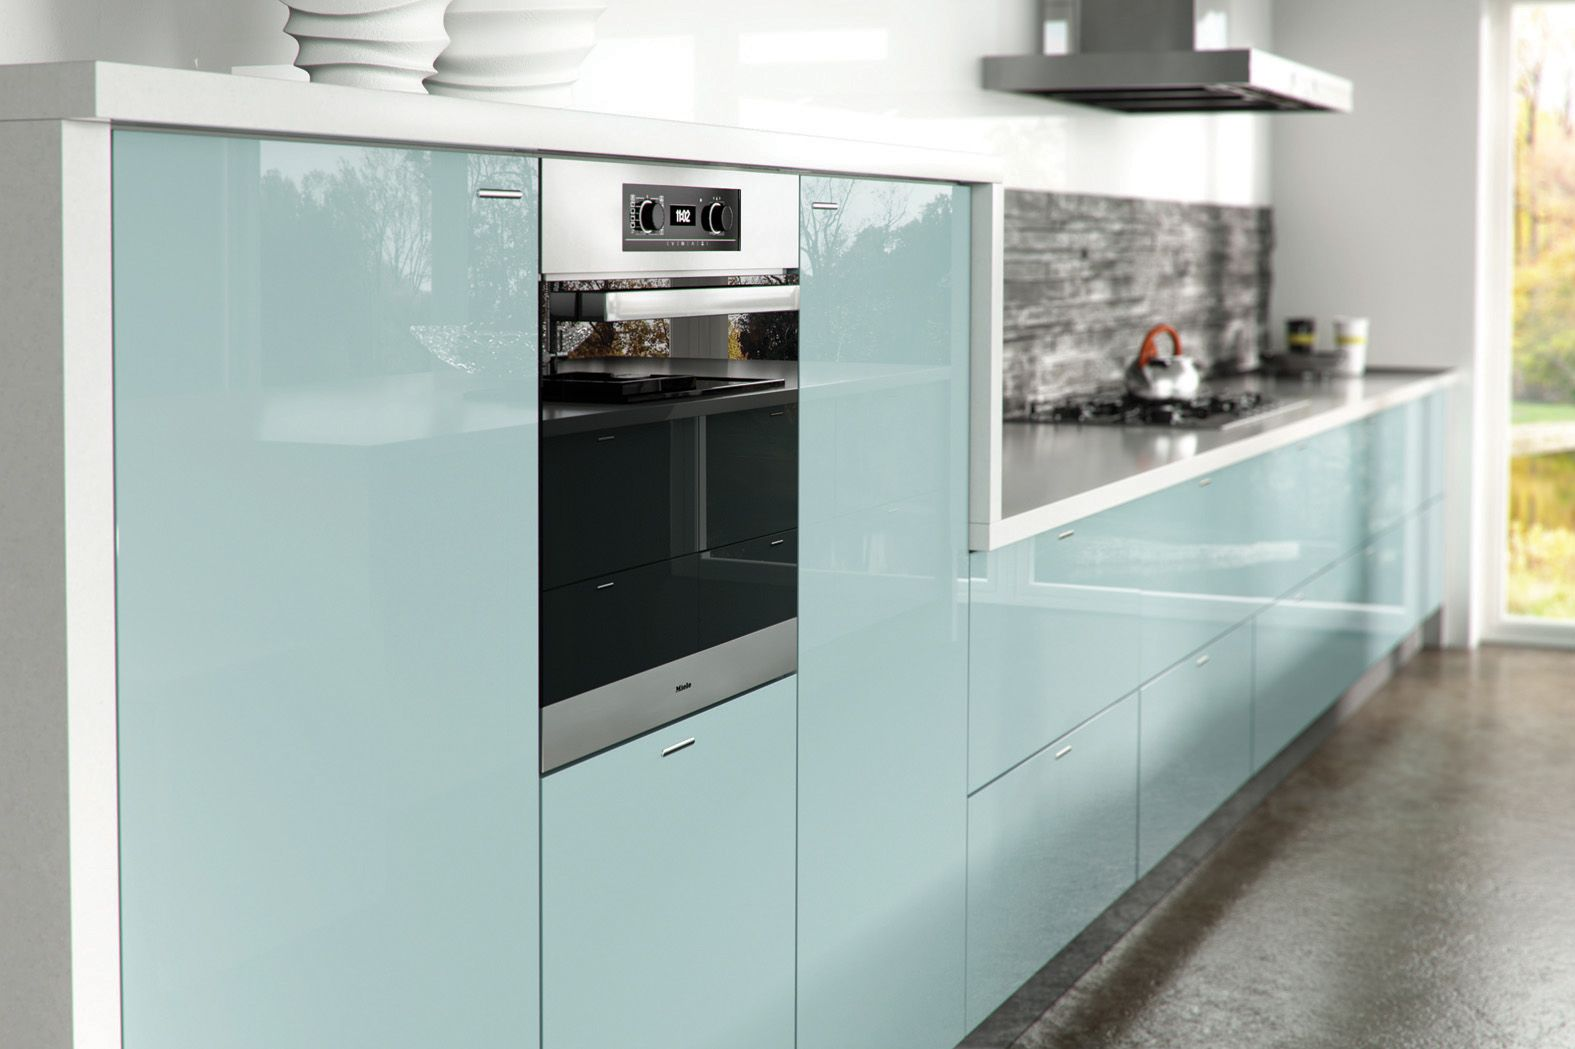 MetallicBlue Acrylic High Gloss Kitchen Doors | kitchen revamp ...